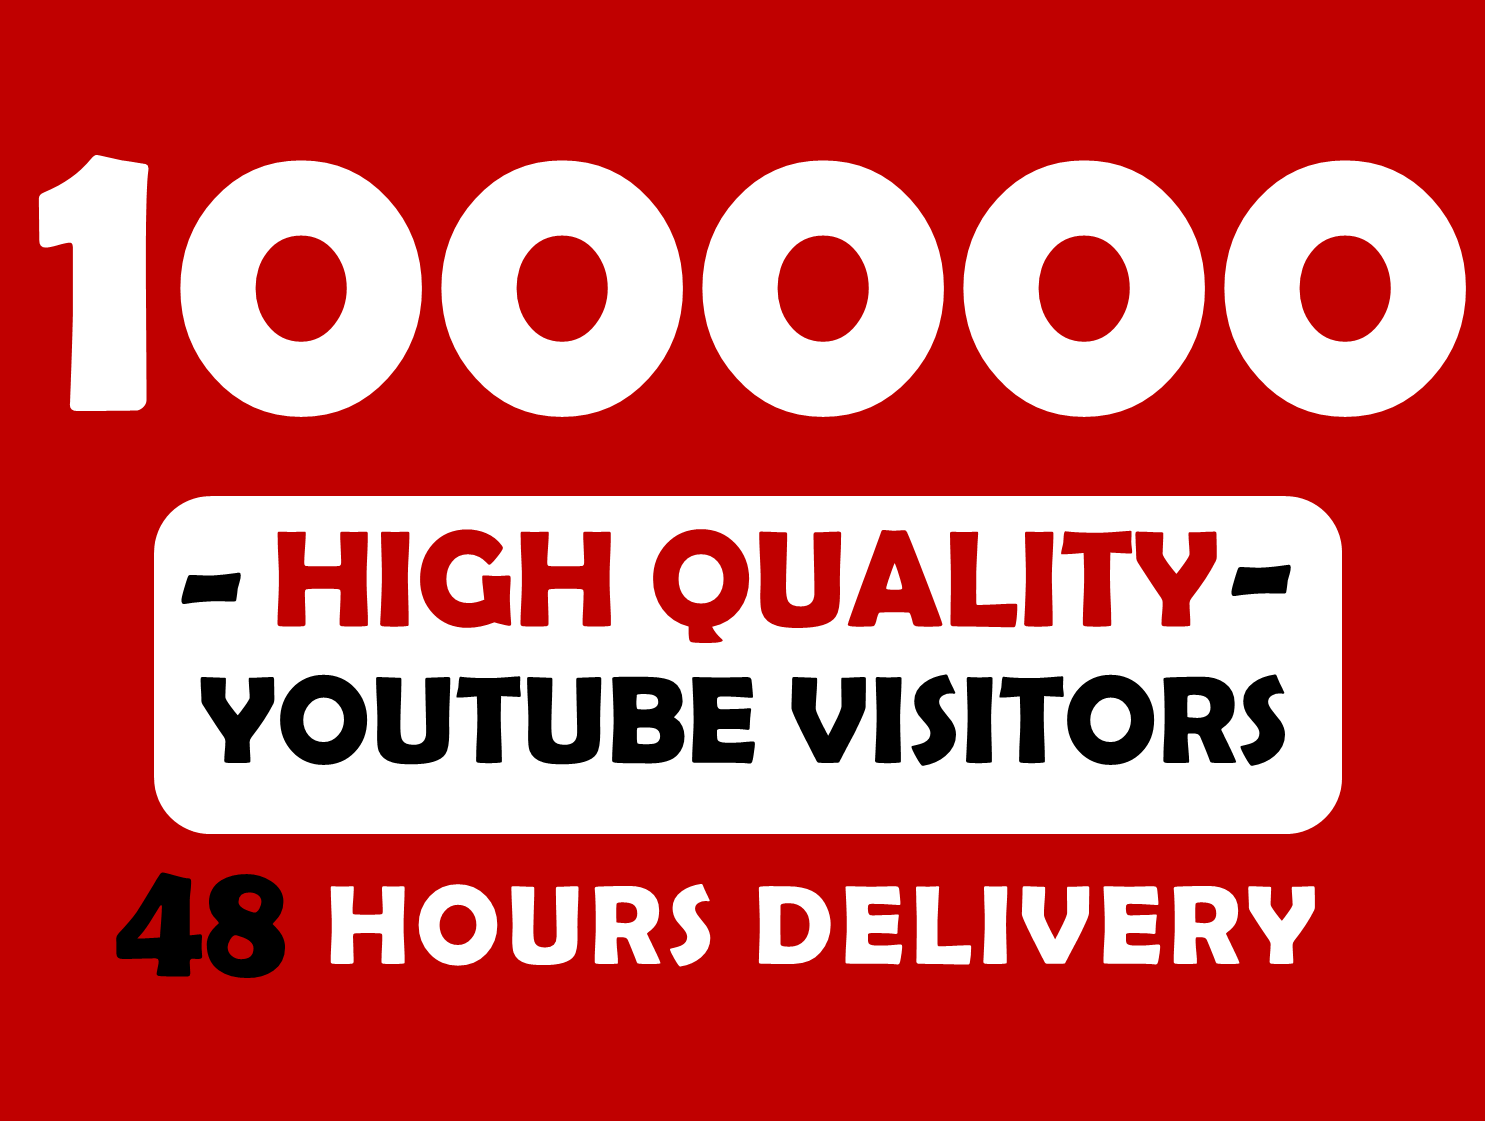 10,000 To 12,000 High Quality YouTube Delivery Time